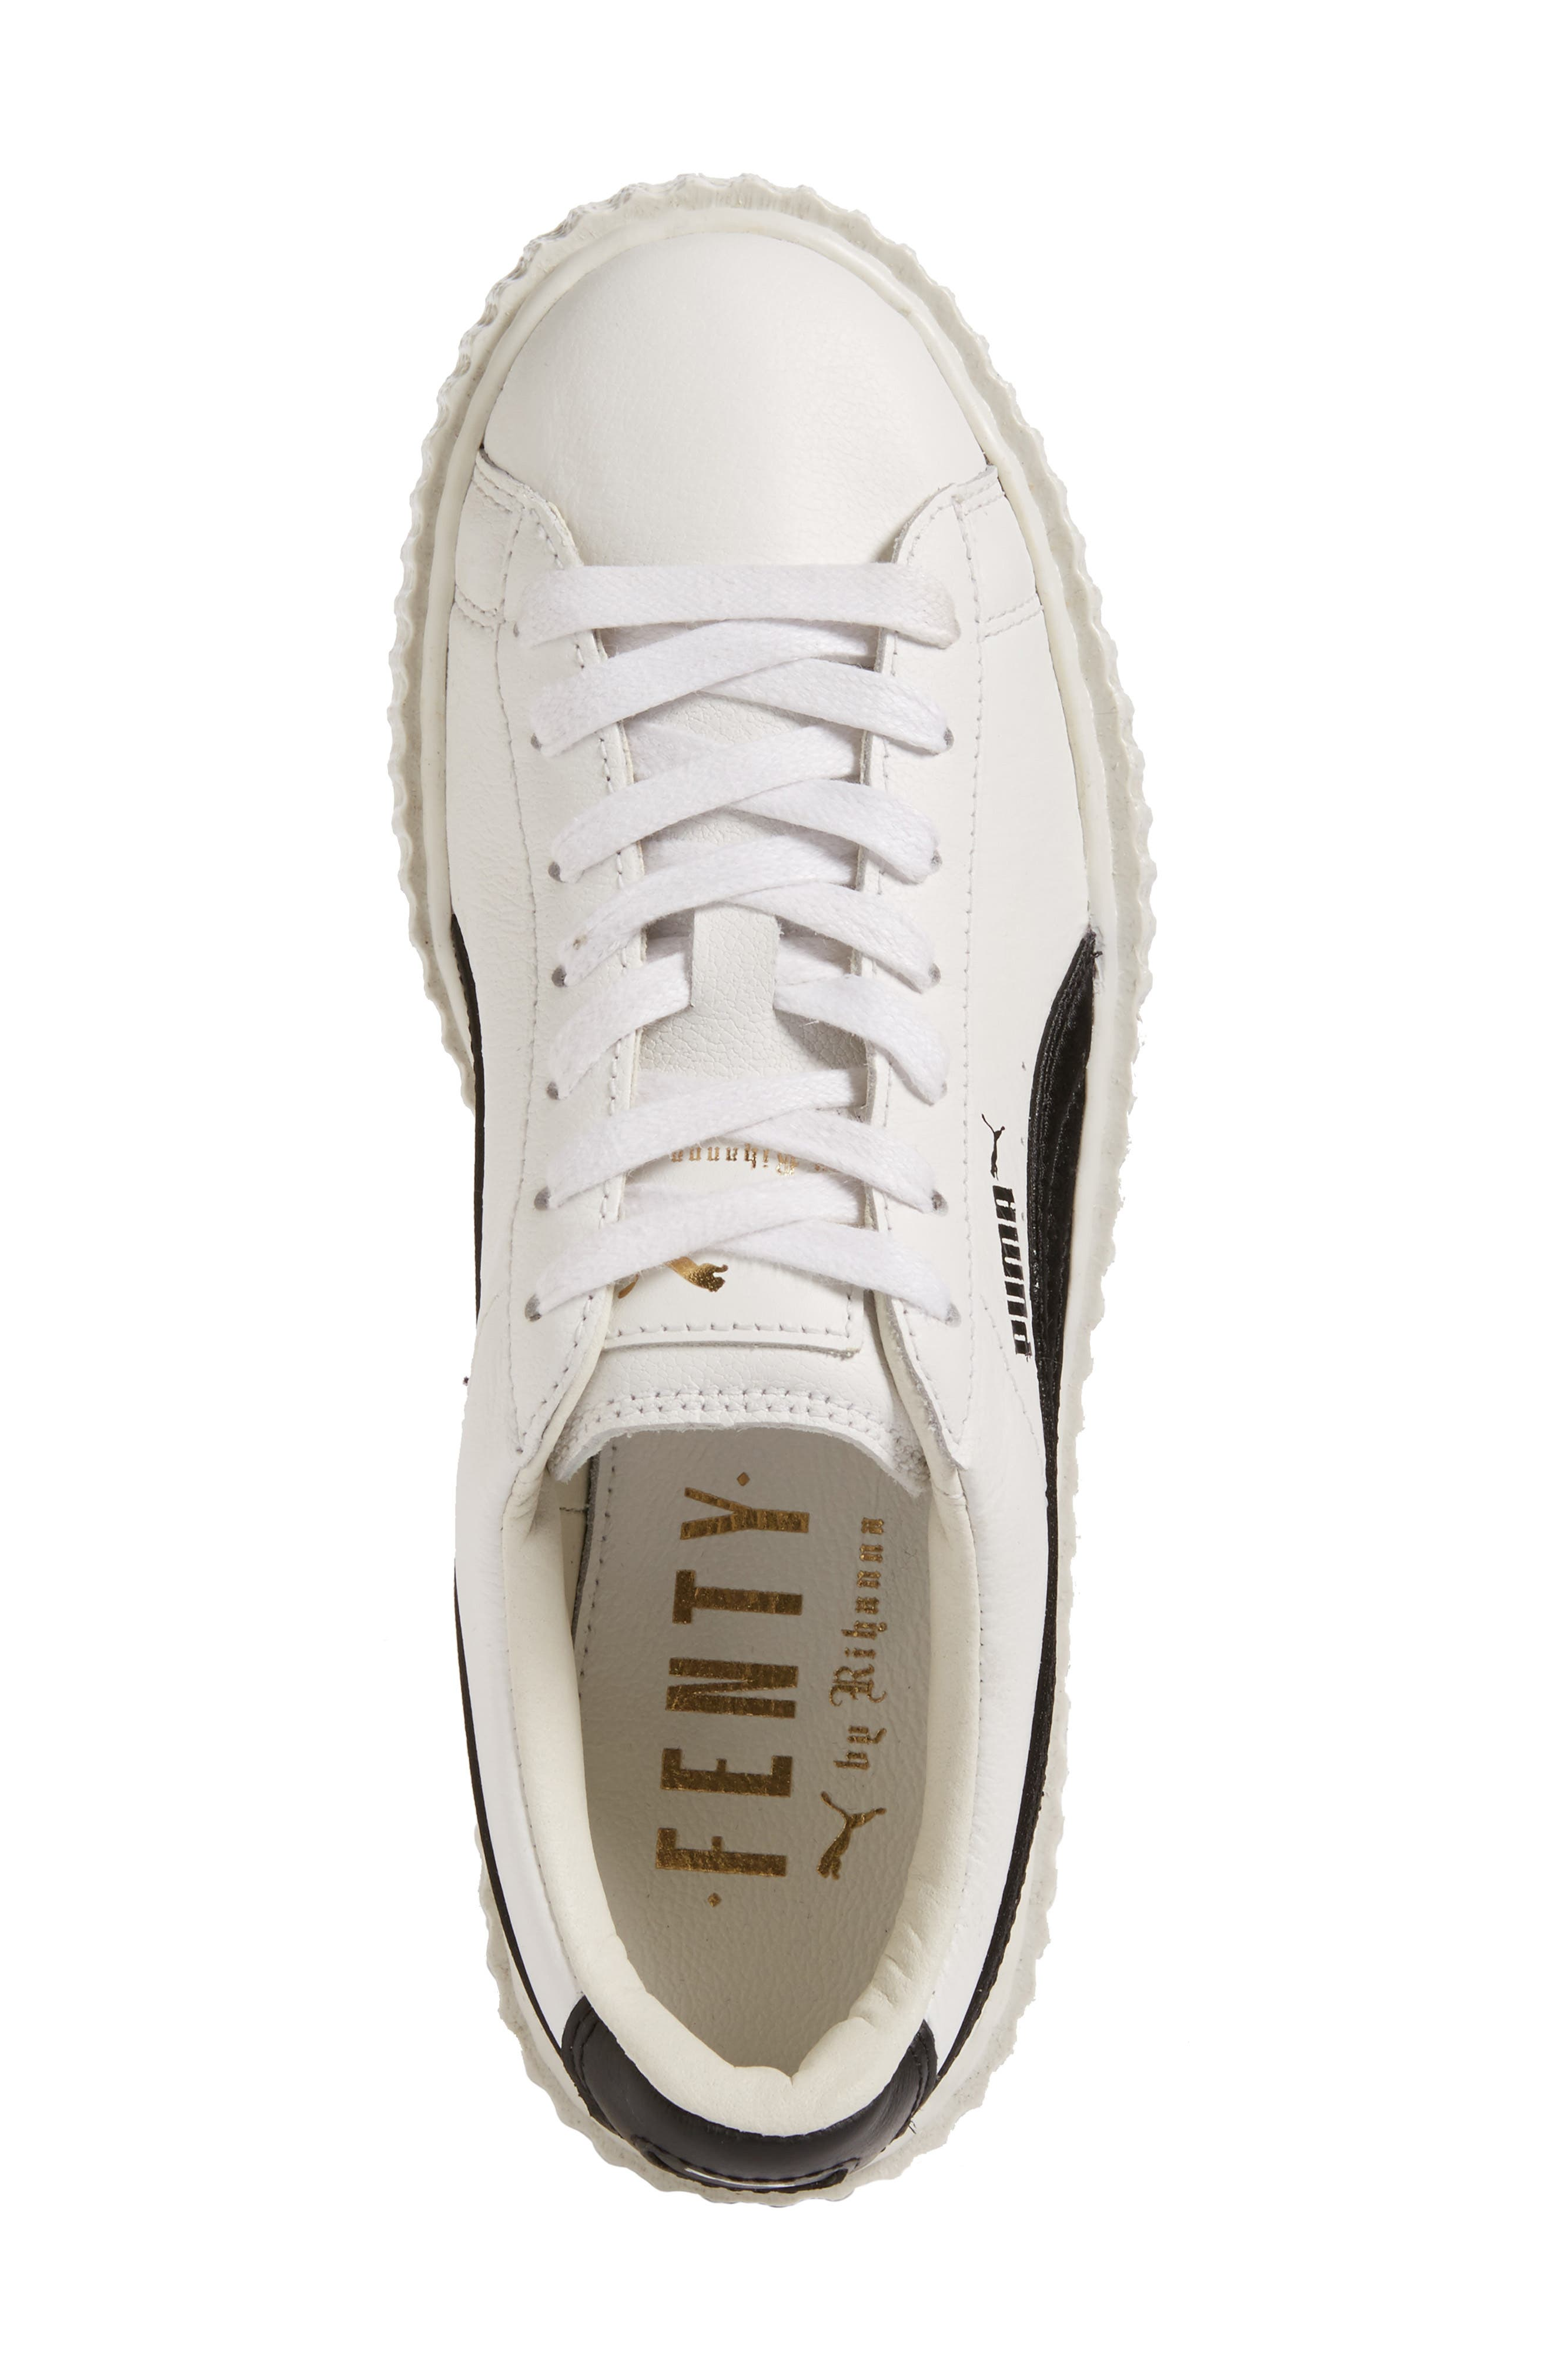 FENTY PUMA by Rihanna Creeper Sneaker,                             Alternate thumbnail 5, color,                             White Leather